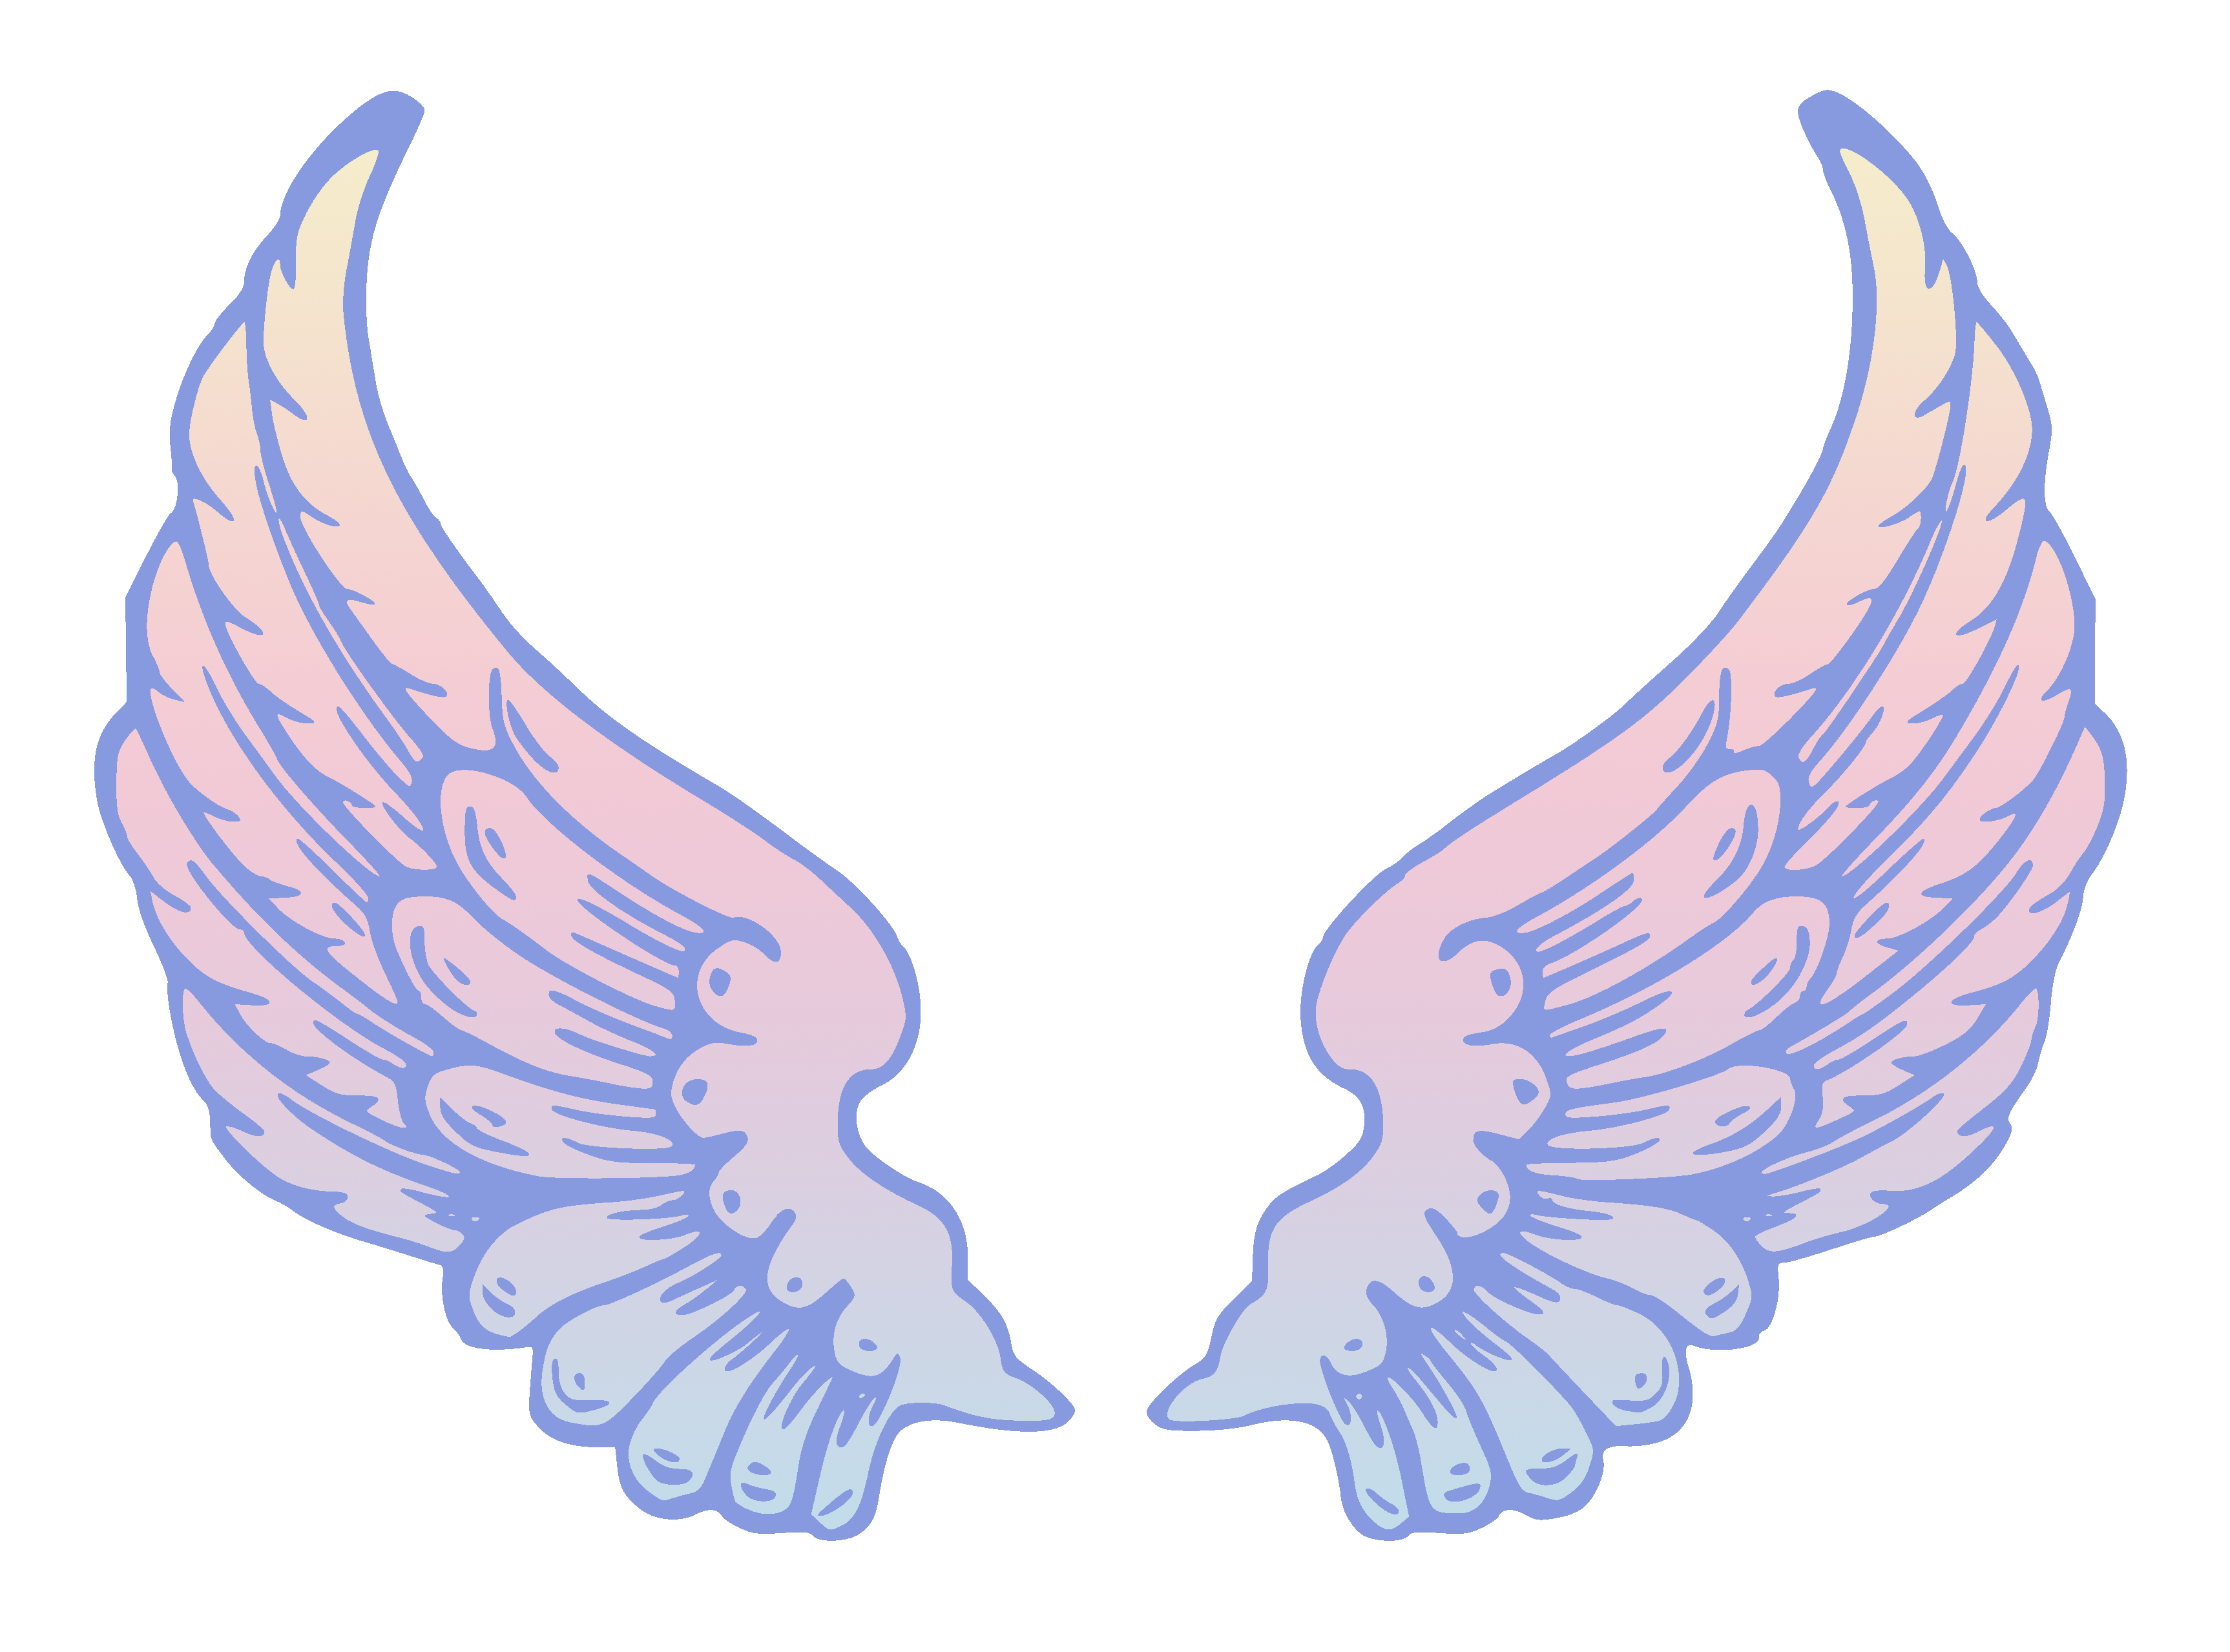 Blue angel wings png. Download cool stuff i